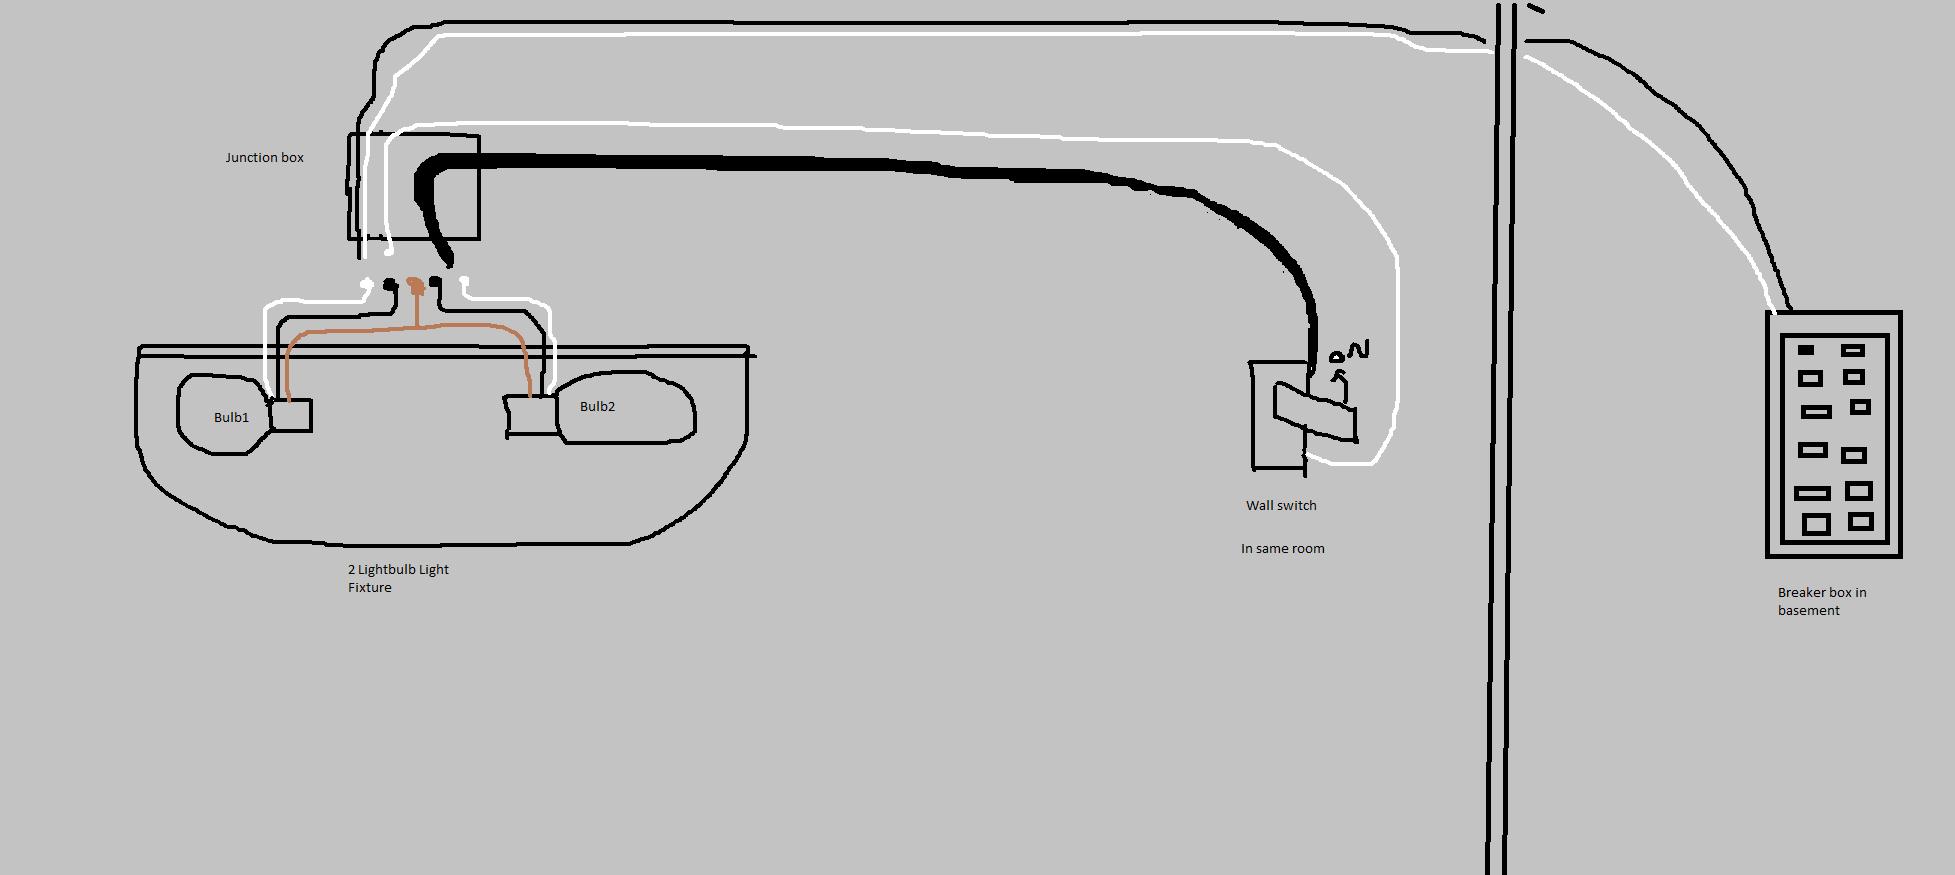 Electrical - A Light Fixture With 2 White, 2 Black Wires, 1 Copper - Light Fixture Wiring Diagram